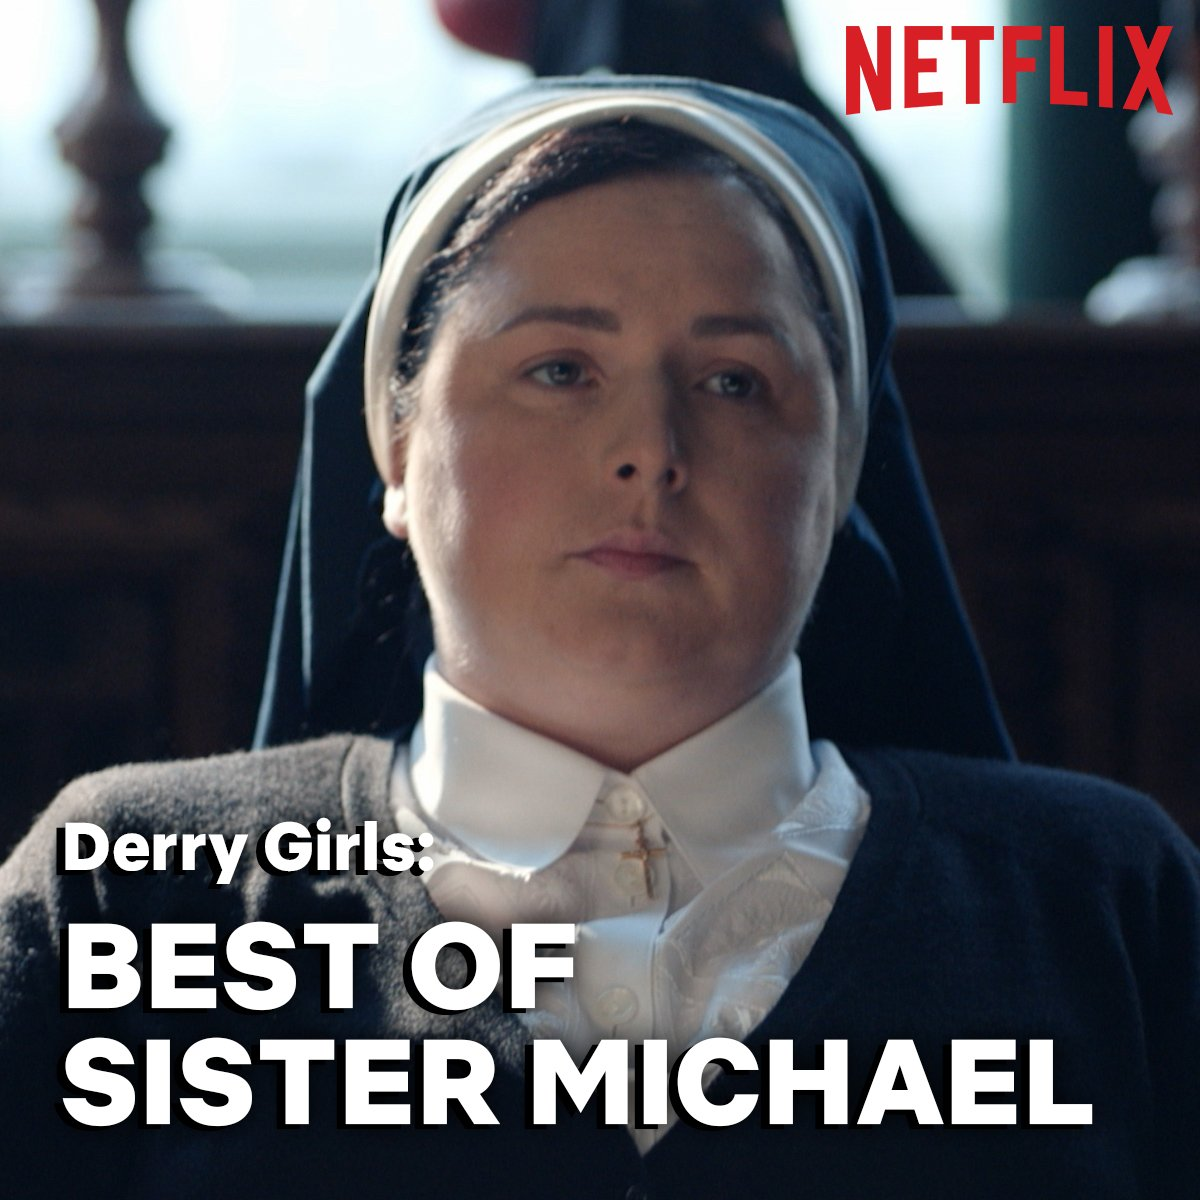 sister michael being an absolute icon for 4 minutes straight